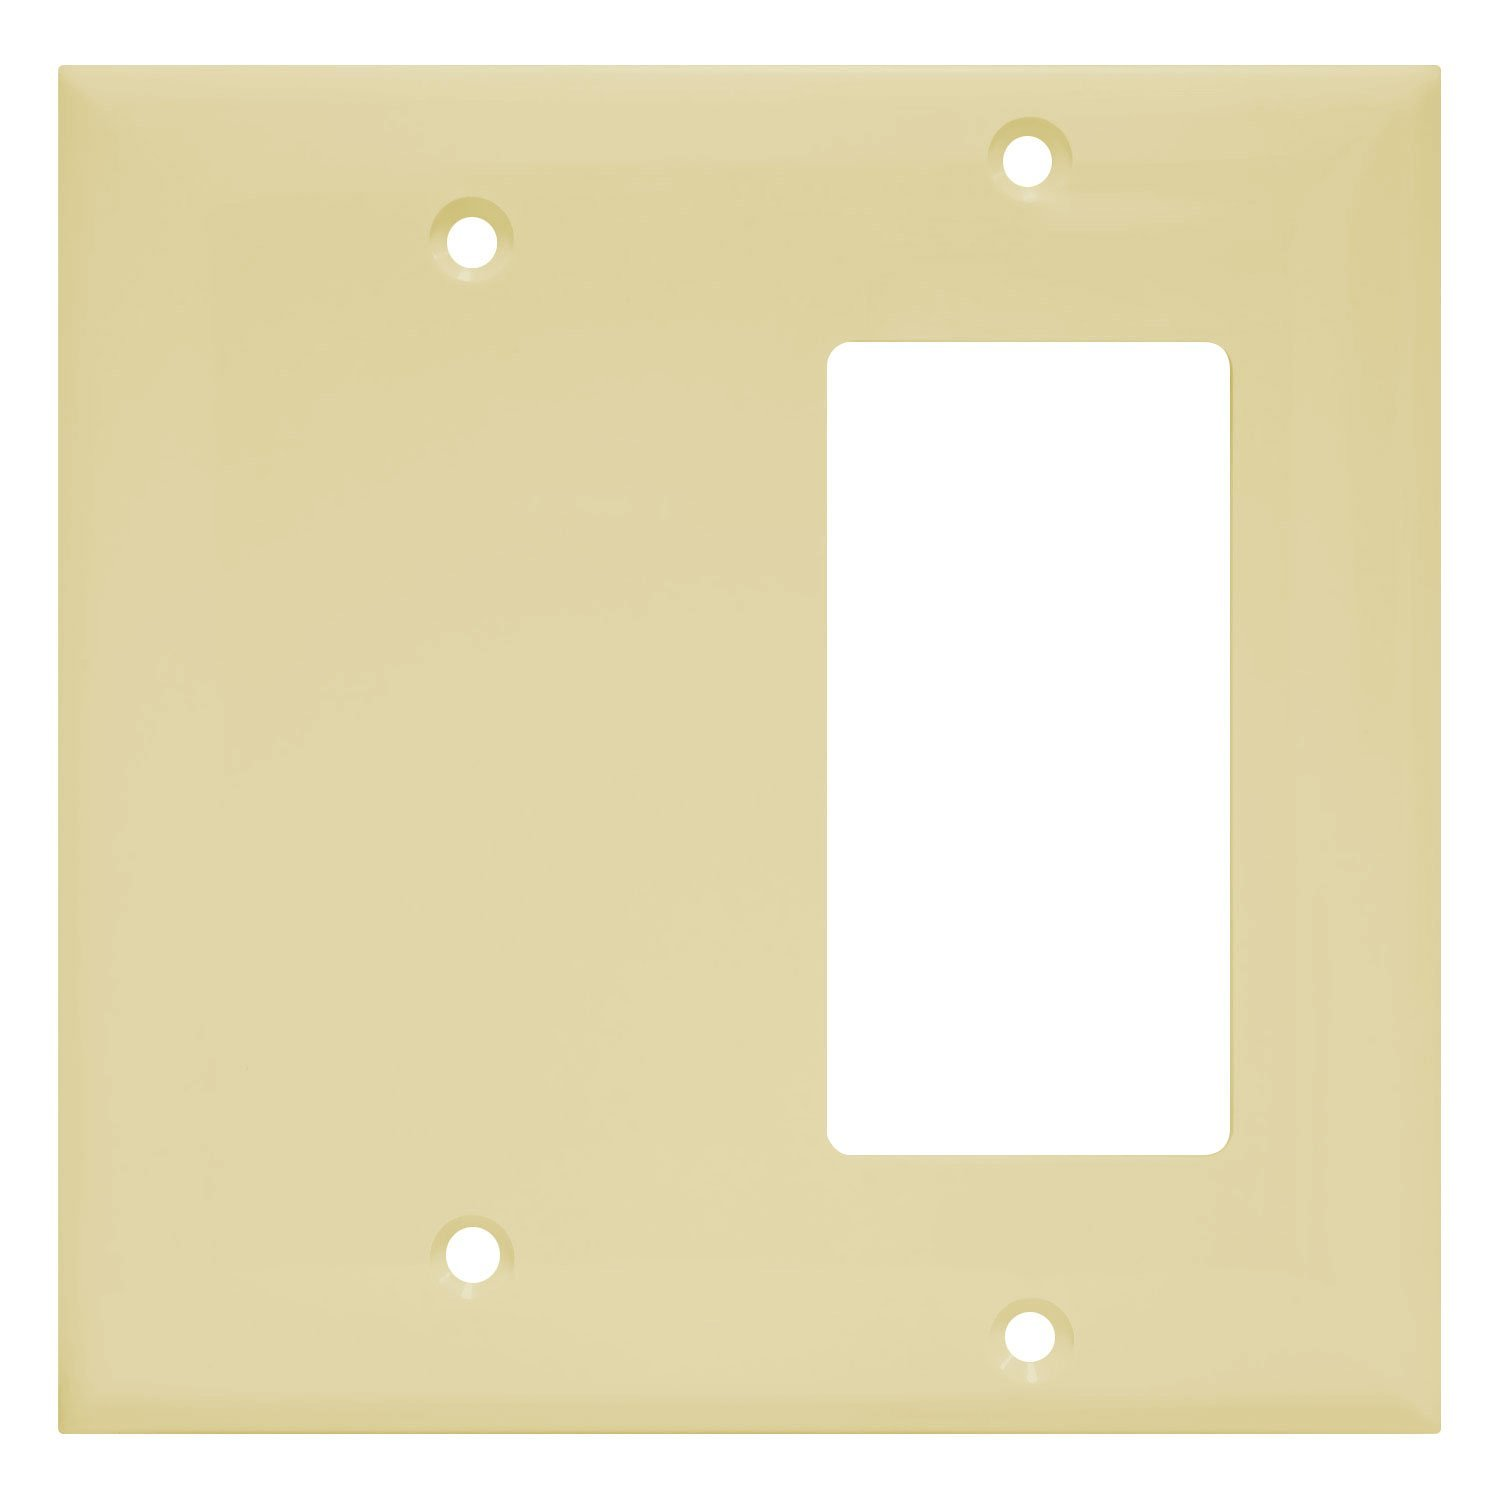 Enerlites 880131 I Decorator/Blank Switch Wall Plate Combination By Home  Decorator Outlet Cover